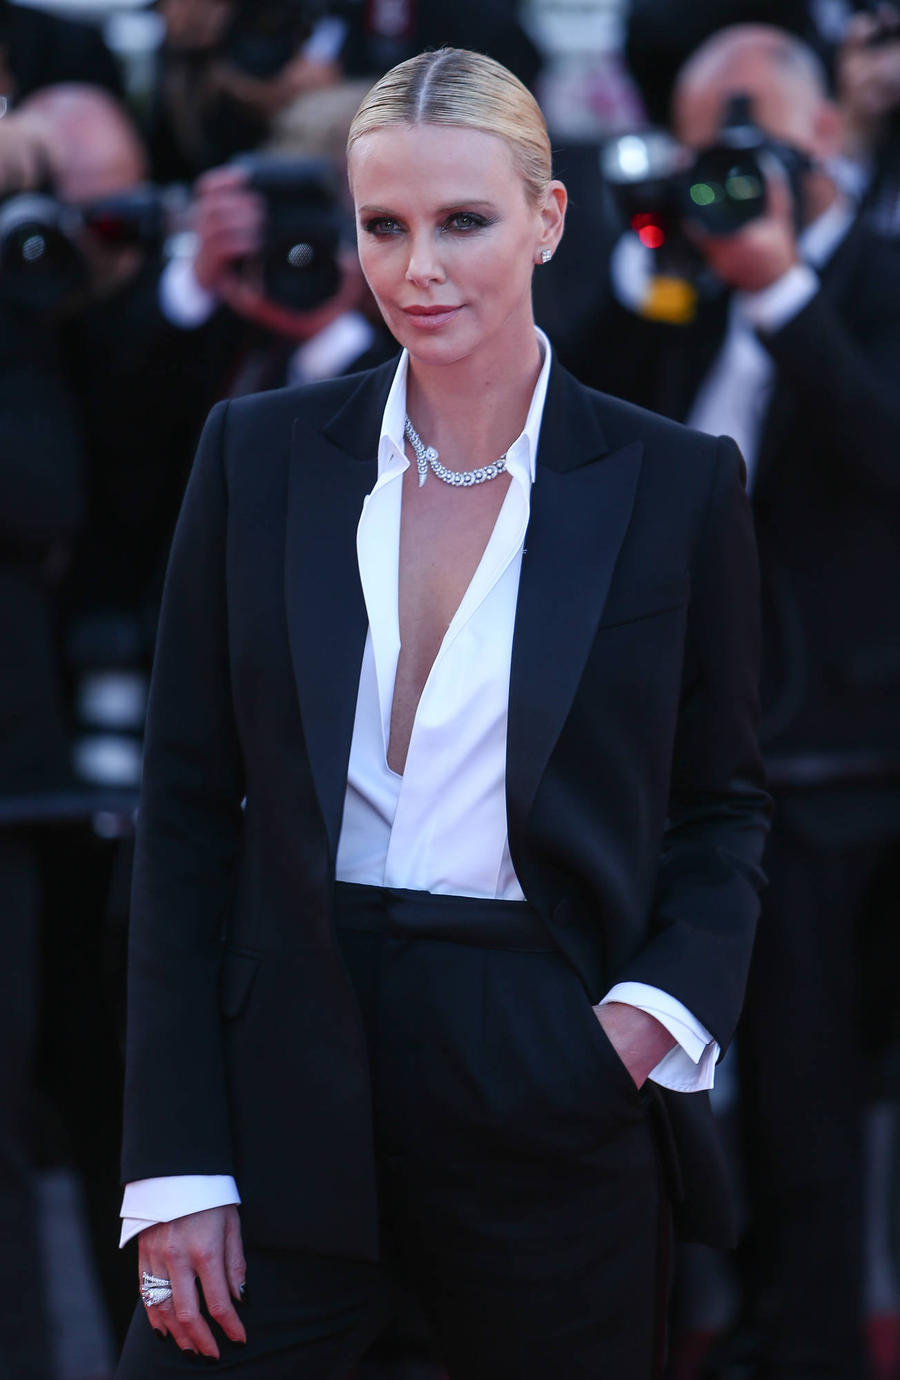 Charlize Theron Sparred With Keanu Reeves While Training For Atomic Blonde